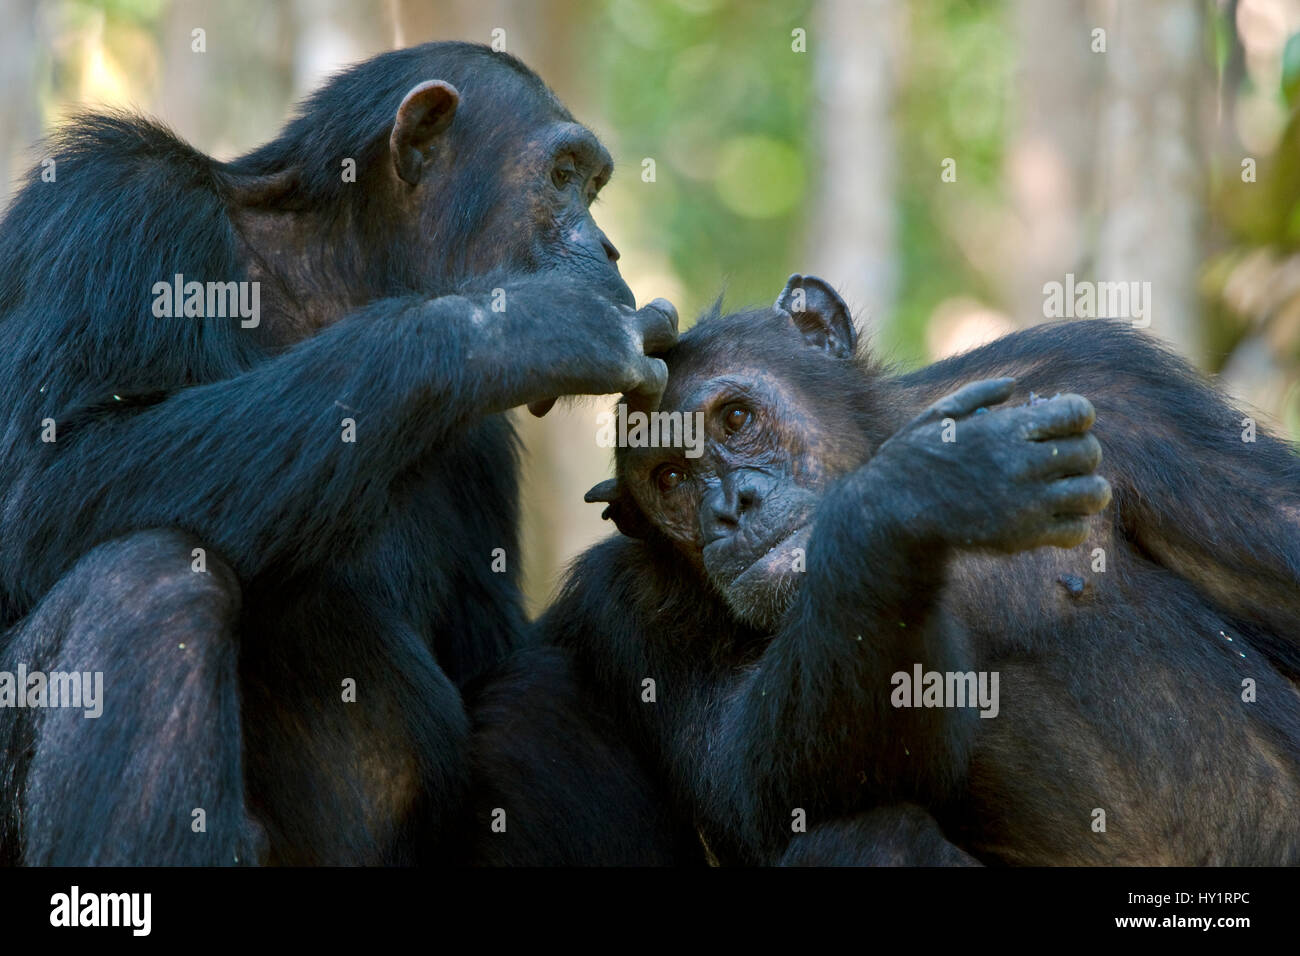 Chimpanzee (Pan troglodytes) being groomed whilst eating berries. Mahale National Park, Tanzania. Endangered species. - Stock Image